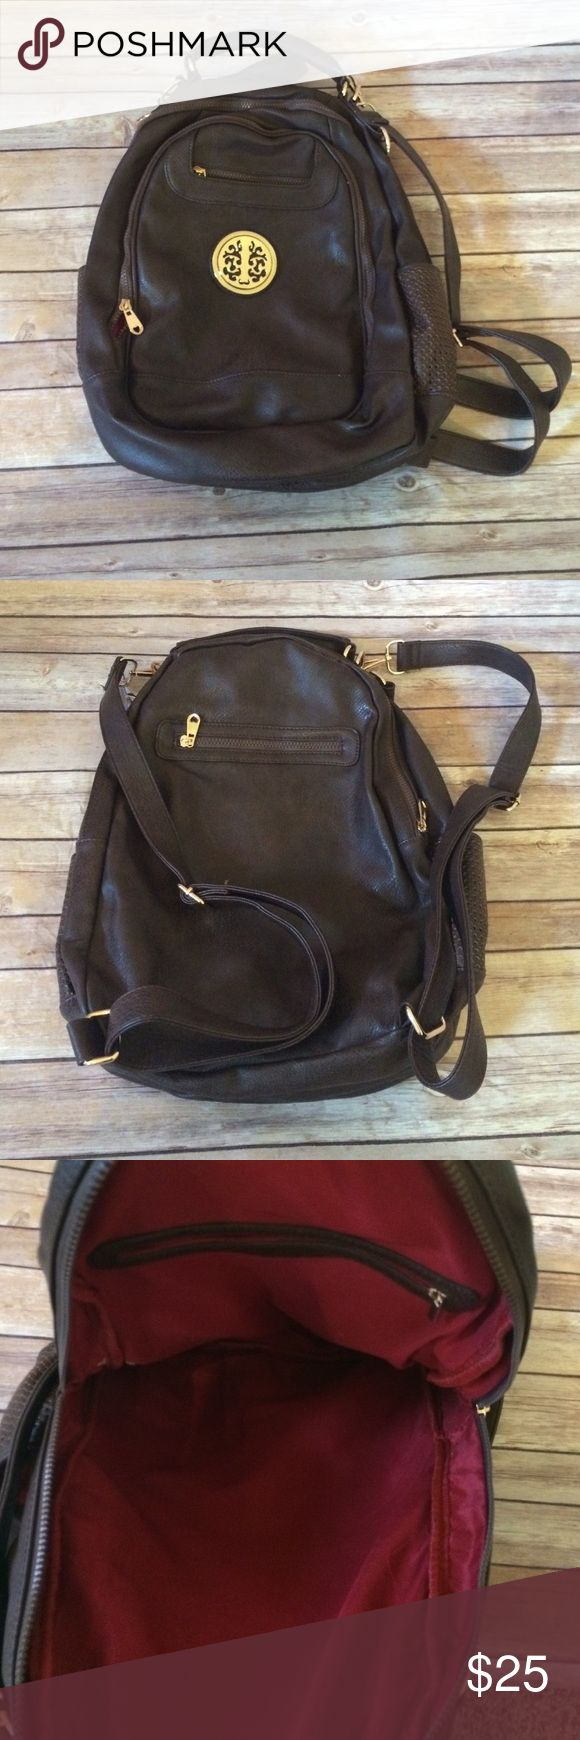 All leather excellent condition backpacks Excellent condition trendy backpack leather boutique made boutique Bags Backpacks